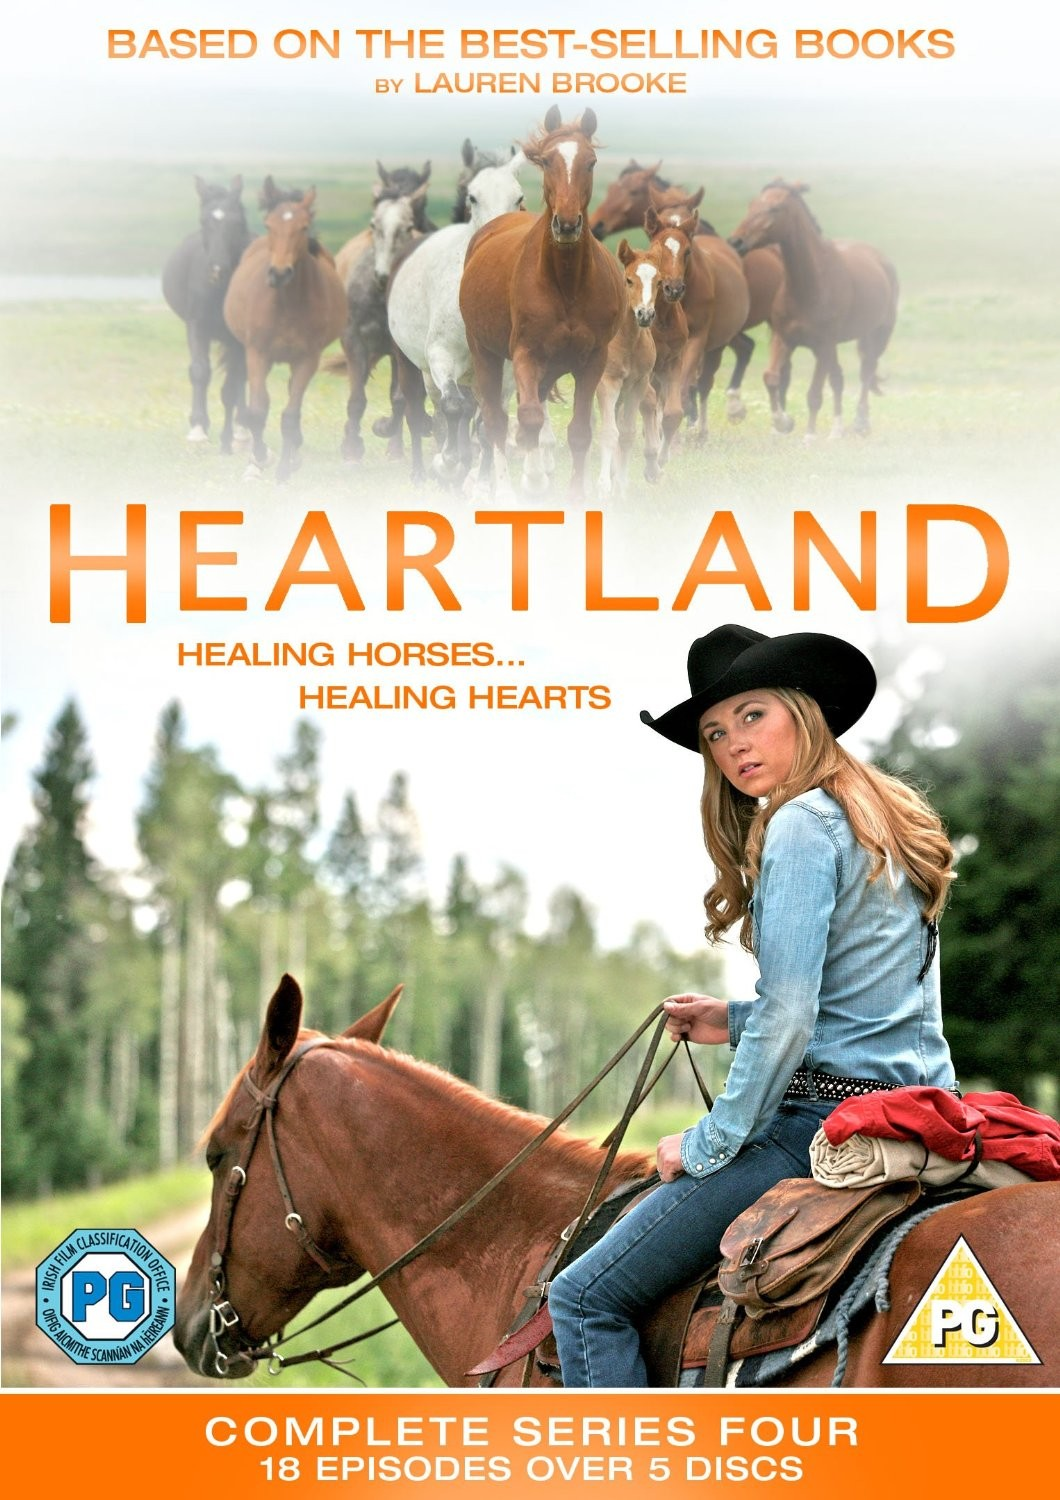 Heartland The Complete Series Four DVD Box Set from trot-online